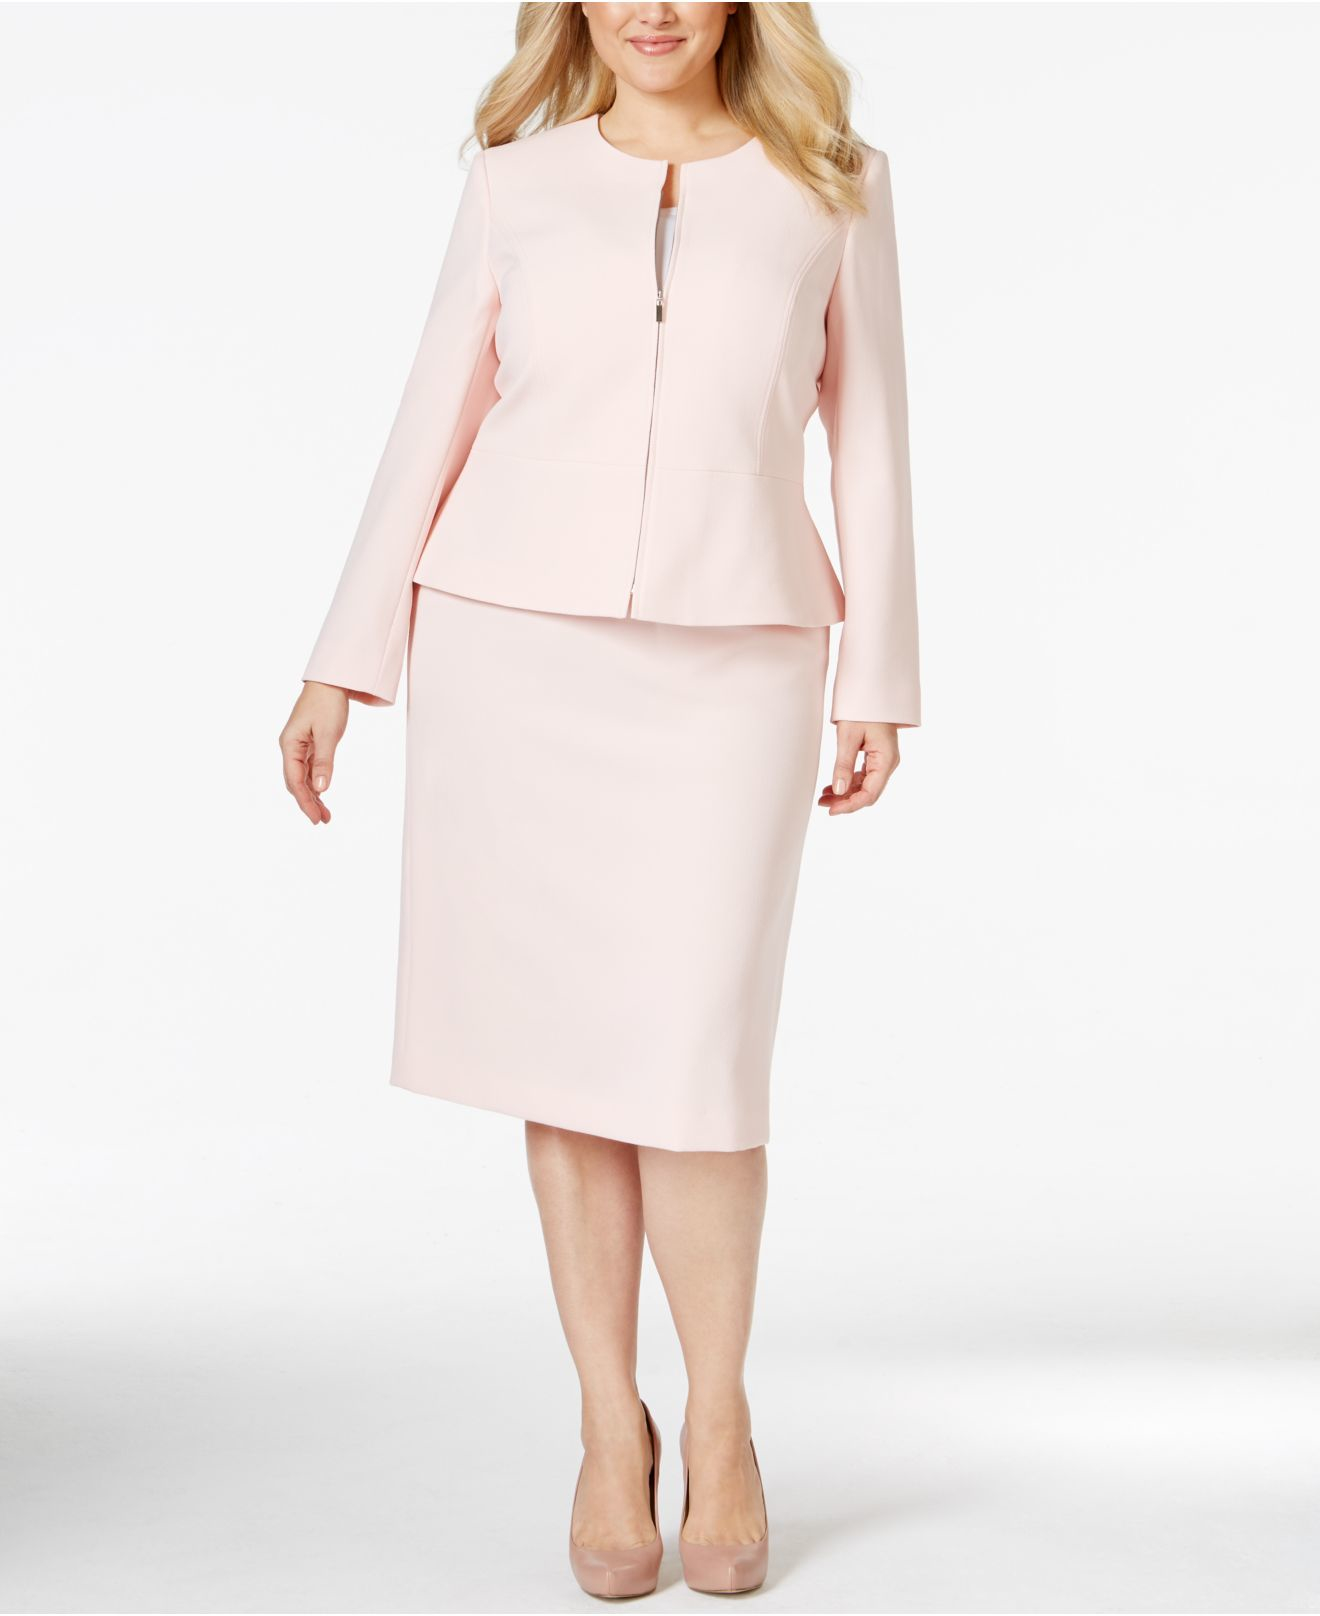 Plus Size Zip-front Peplum Skirt Suit